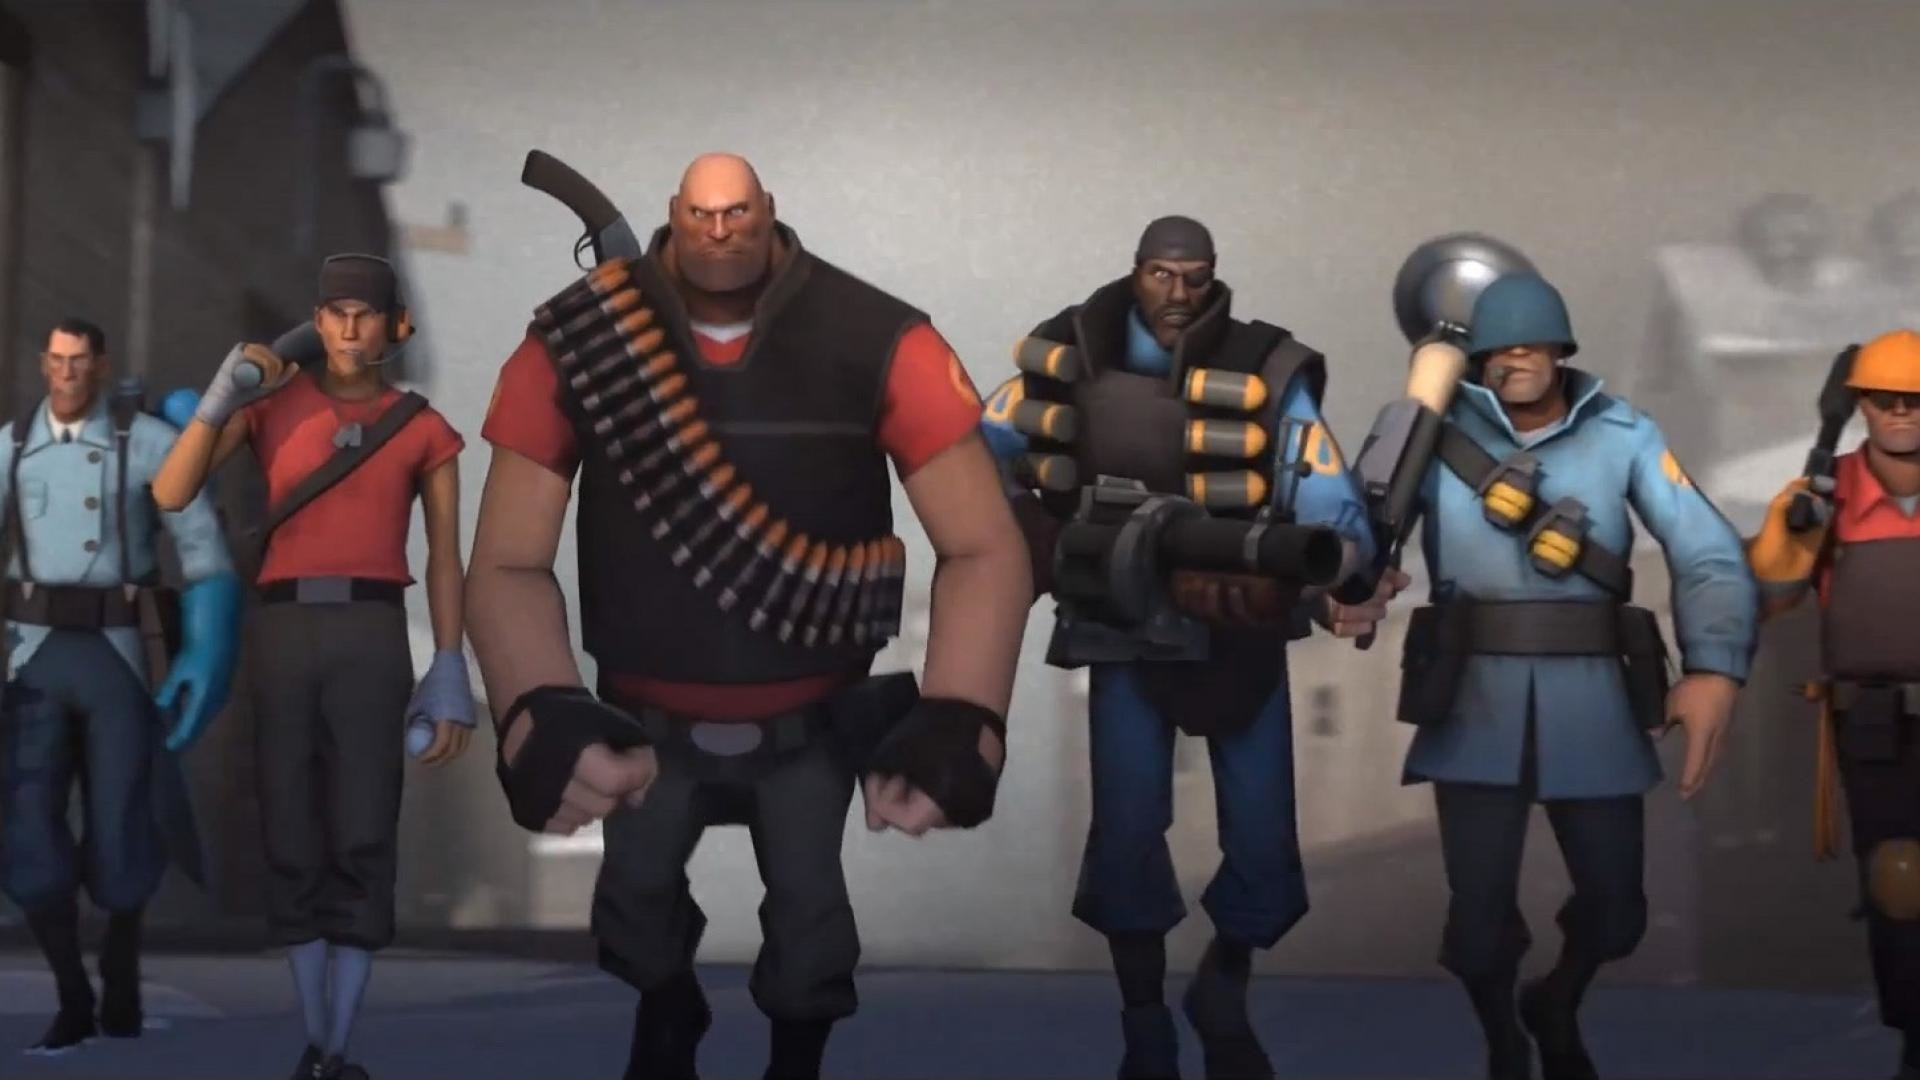 Tf2 Wallpapers 1920x1080 80 Images